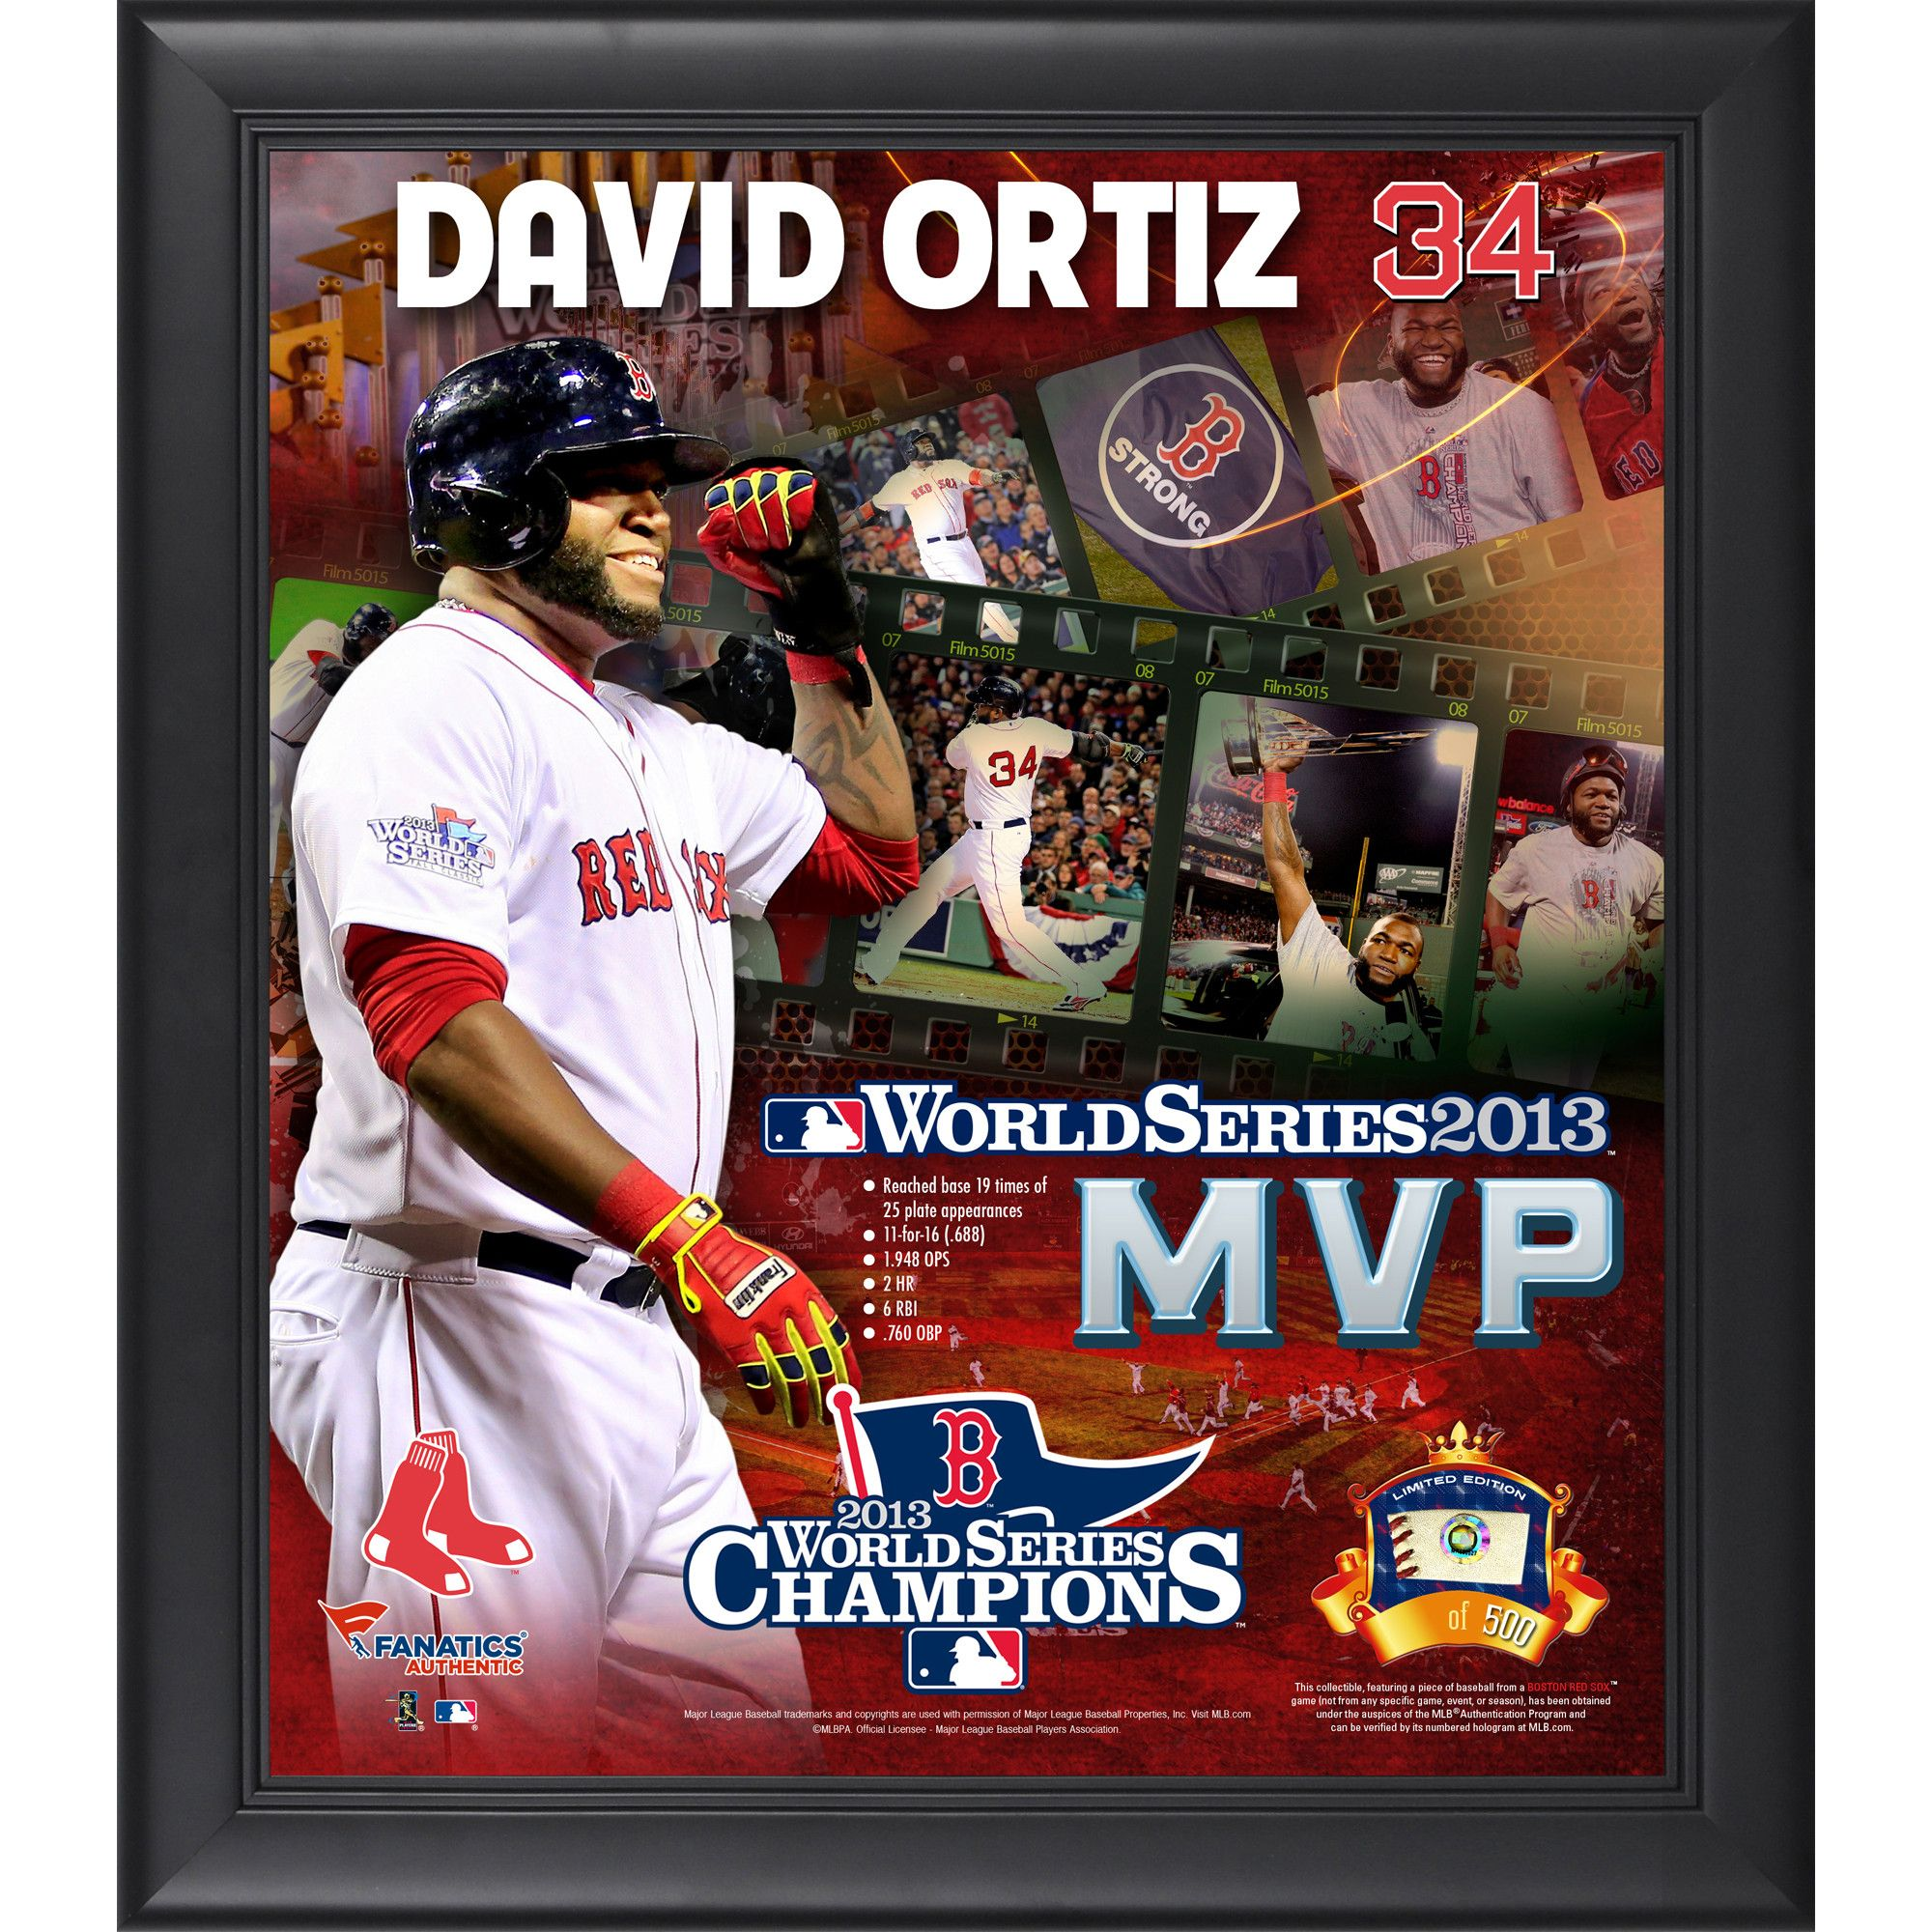 2013 World Series Champs MVP David Ortiz Framed 15x17 Core Collage with Game Used Ball Piece